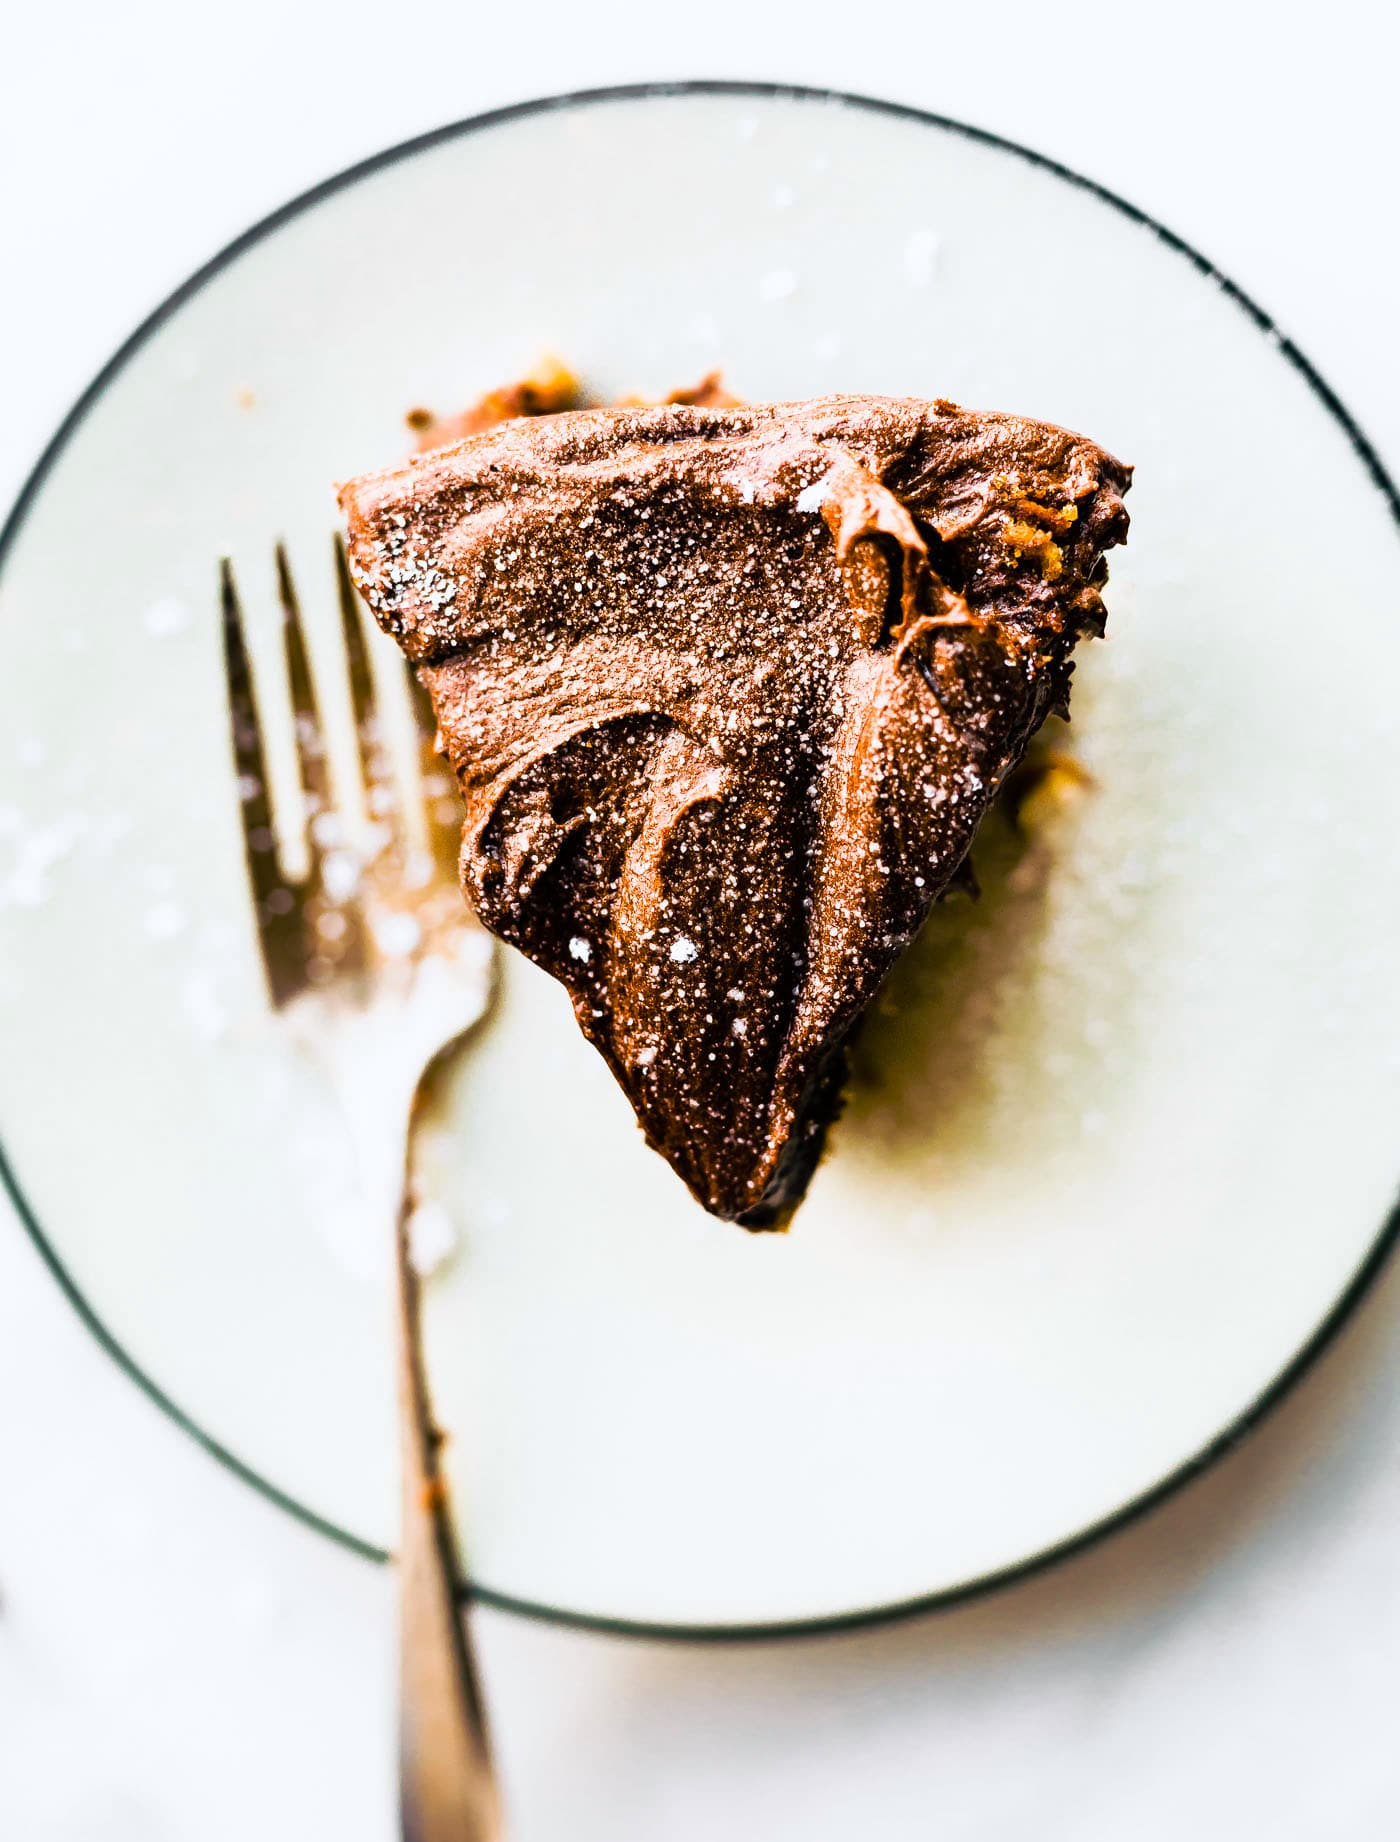 Vegan White Cake with Chocolate Coconut Cream Frosting (paleo)